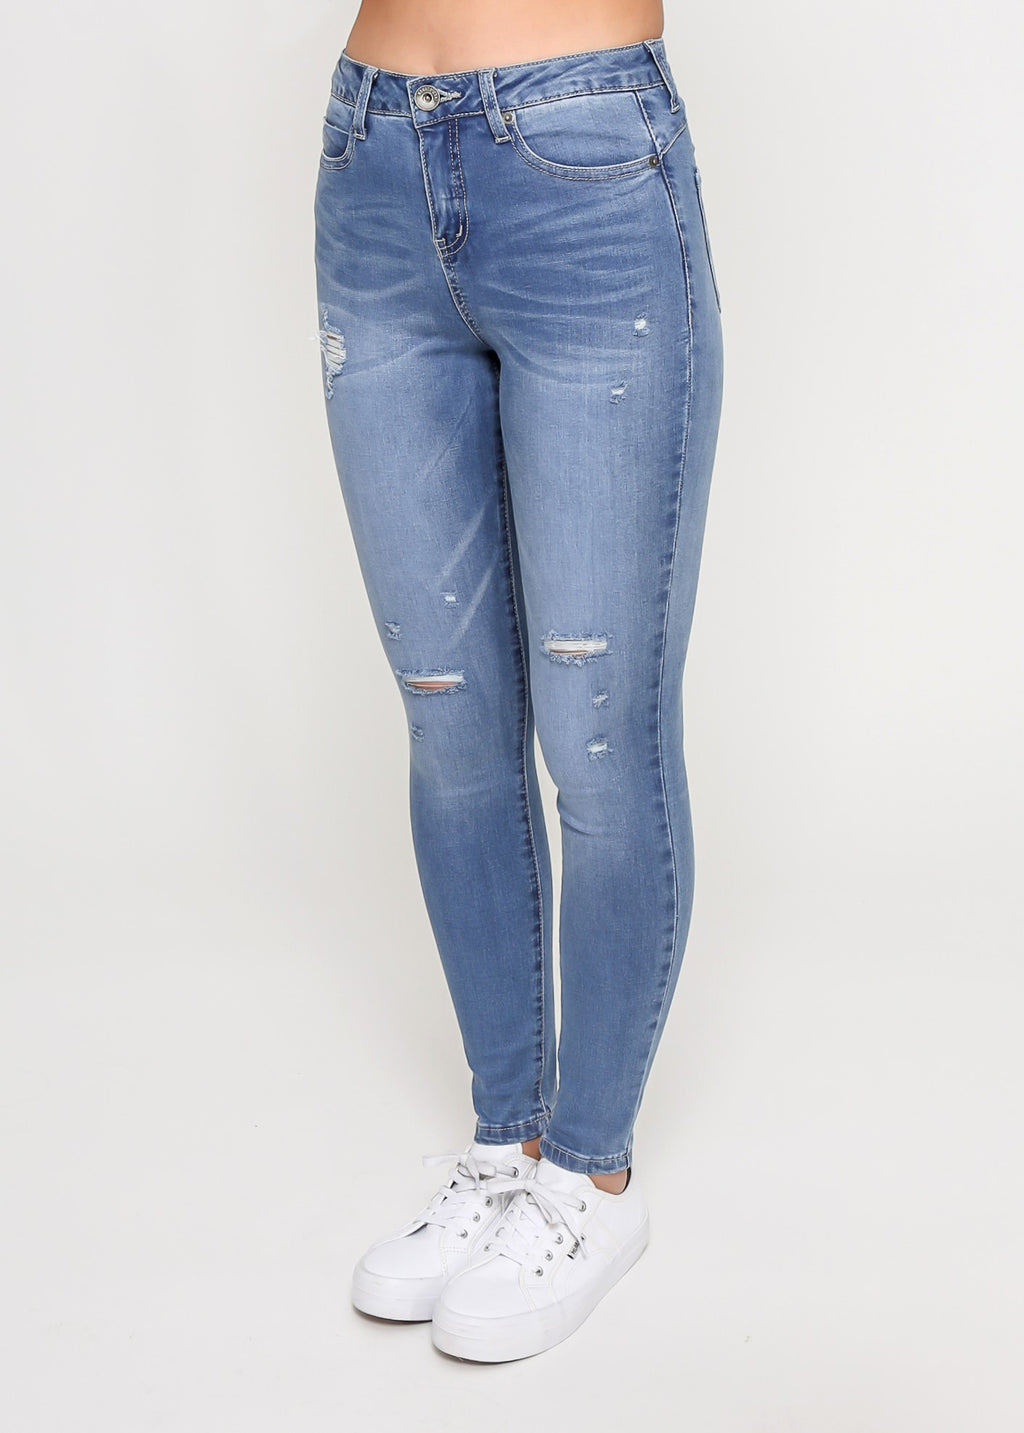 KYLIE HIGH RISE JEAN - Blue wash